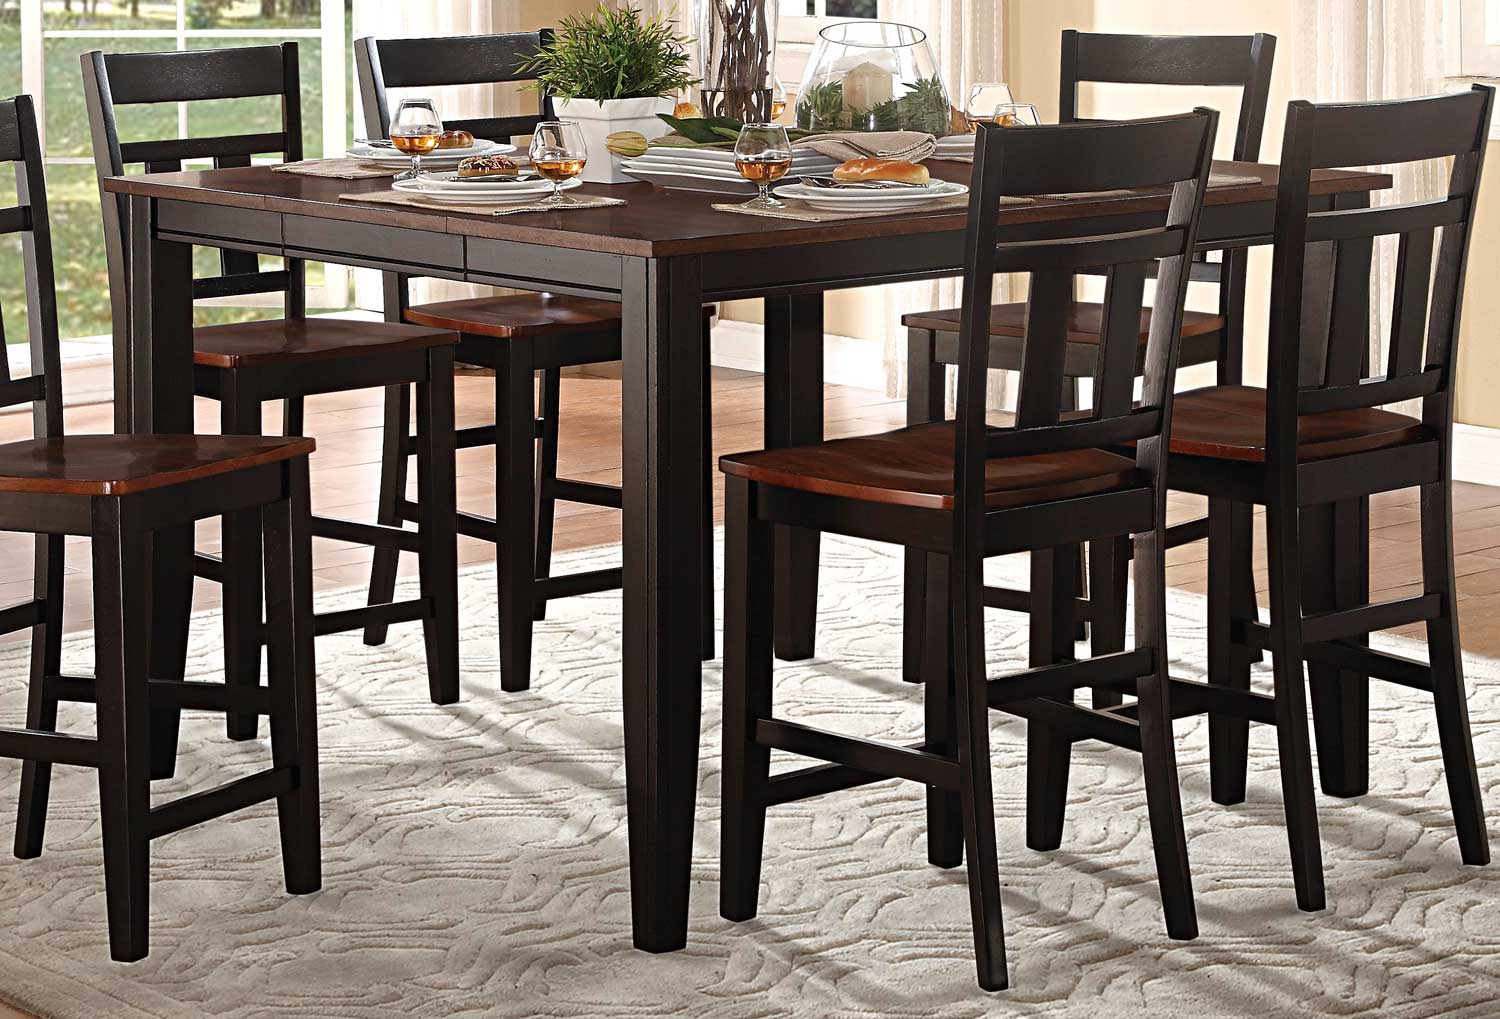 Homelegance Westport Counter Height Table Two Tone Blackcherry - Counter height table for two